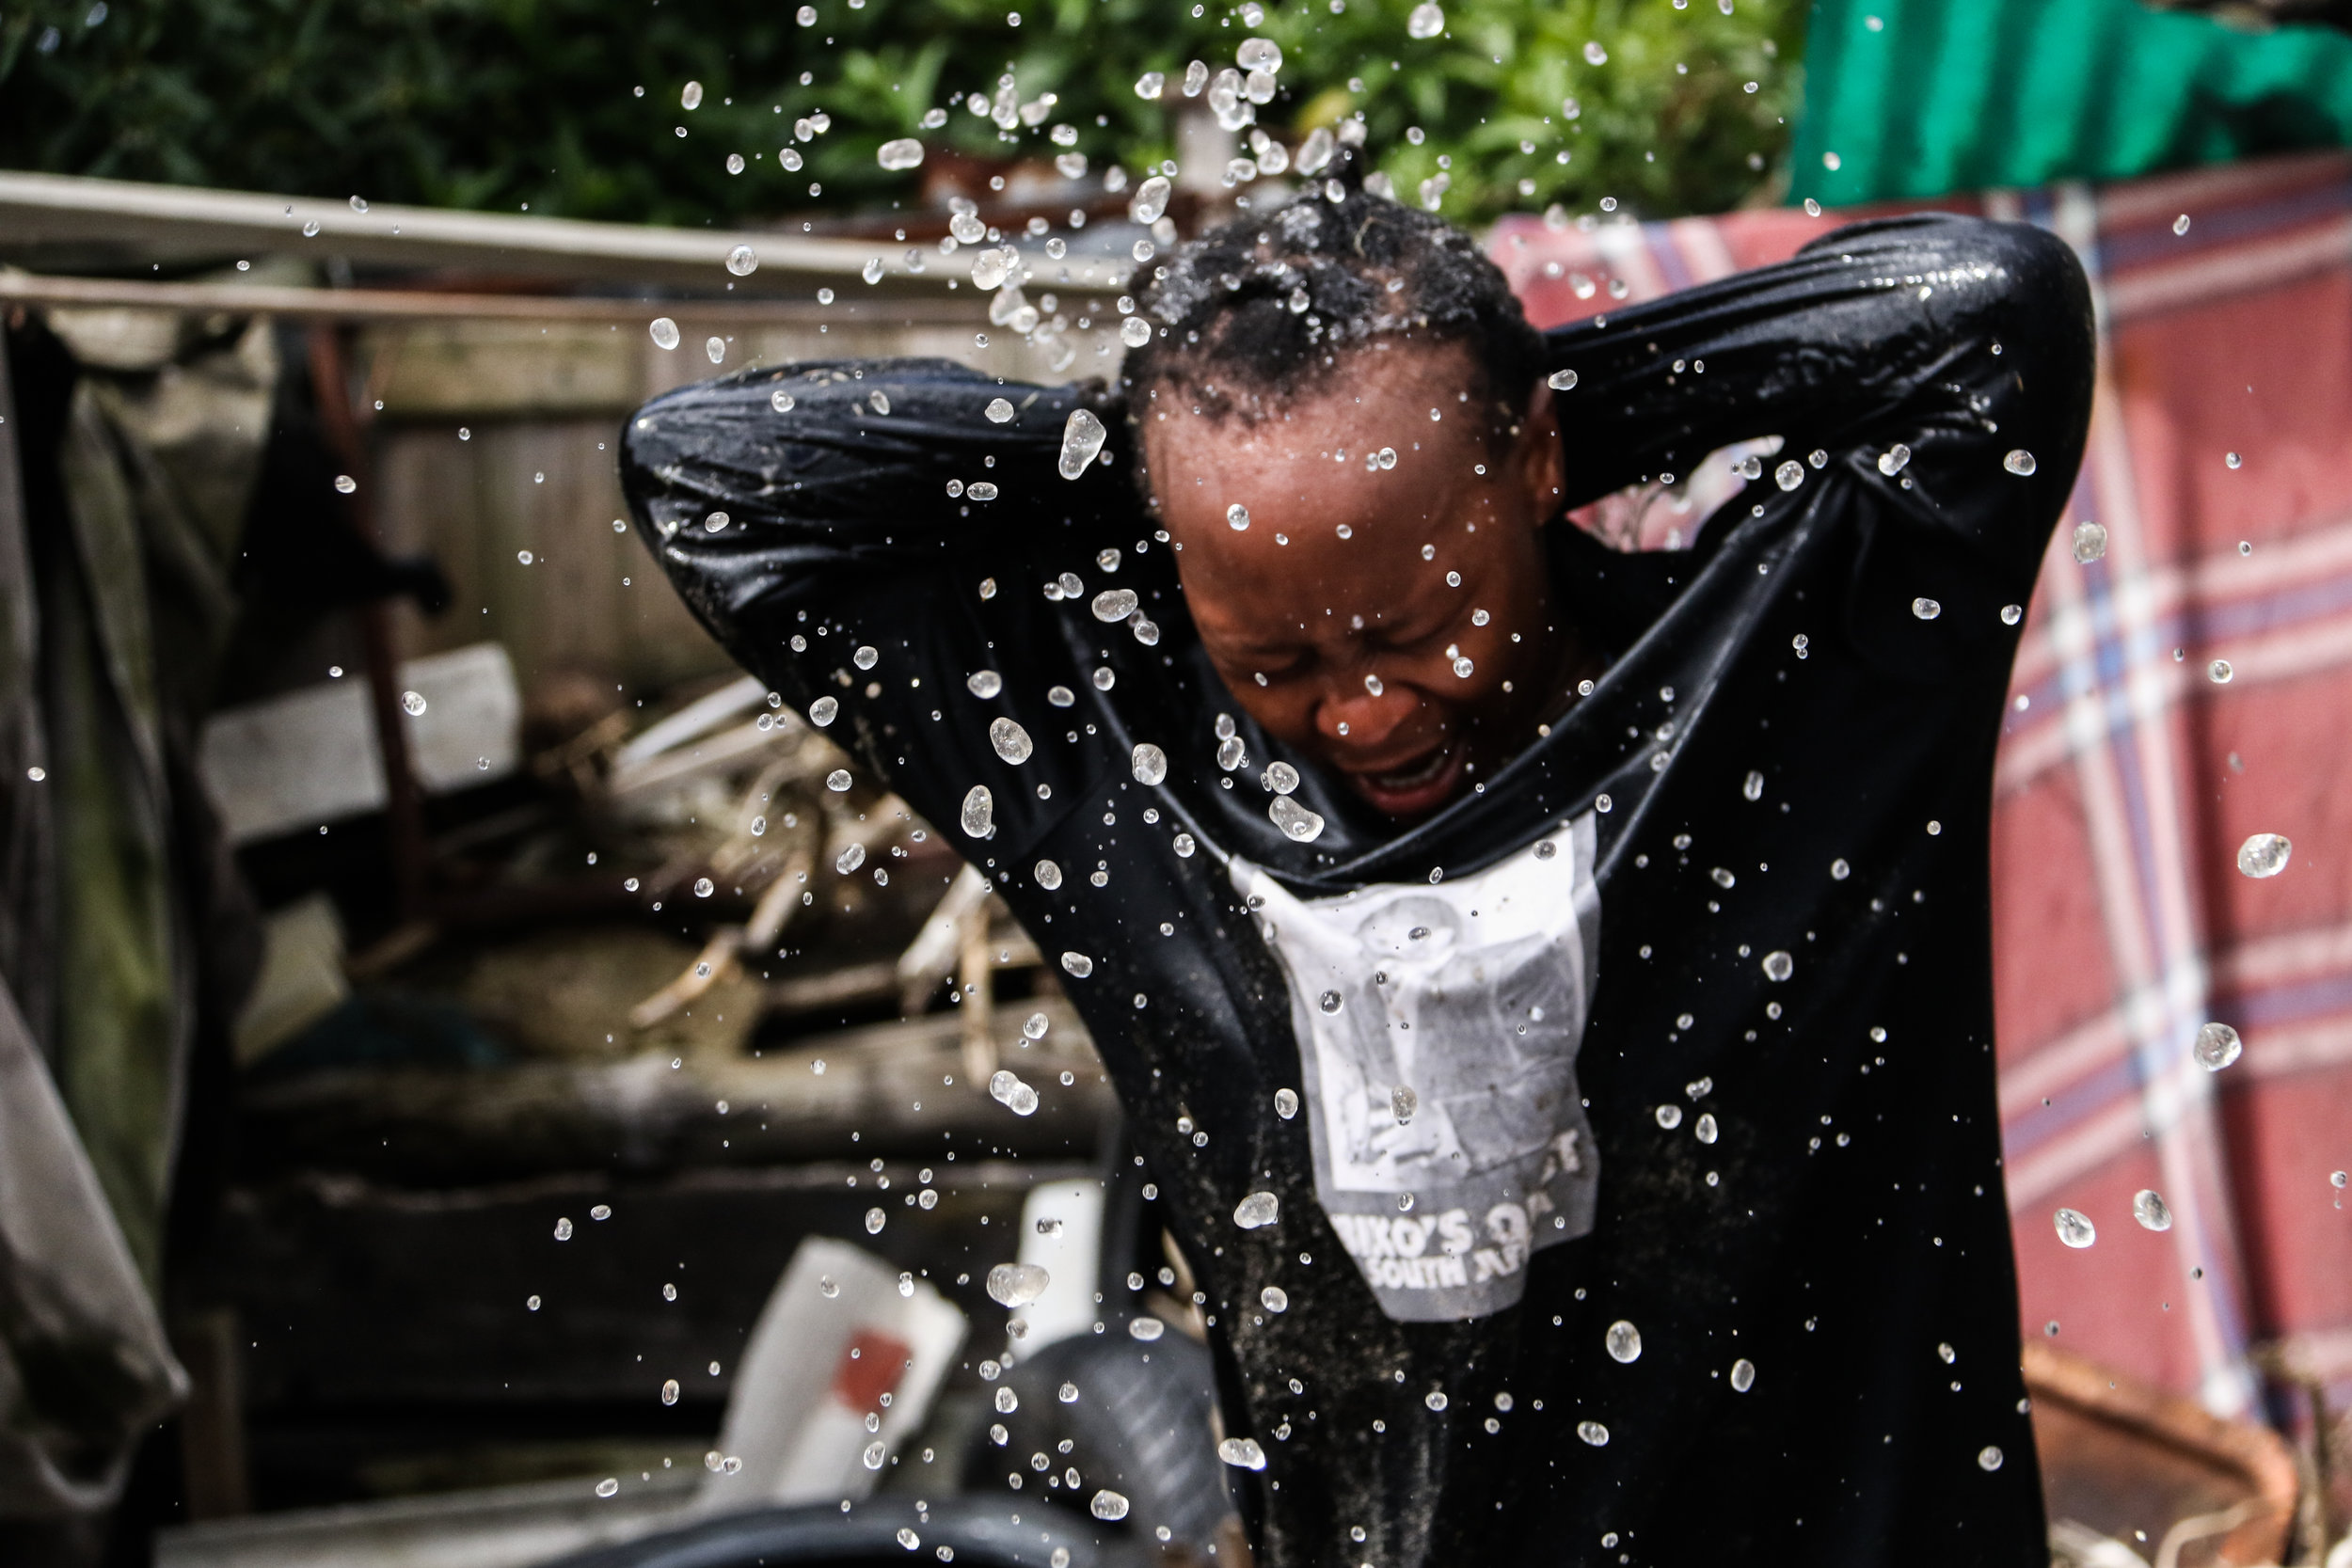 Vathiswa Nodlayiya,a performance artist, rehearses in a backyard in the township of Langa, Cape Town, South Africa